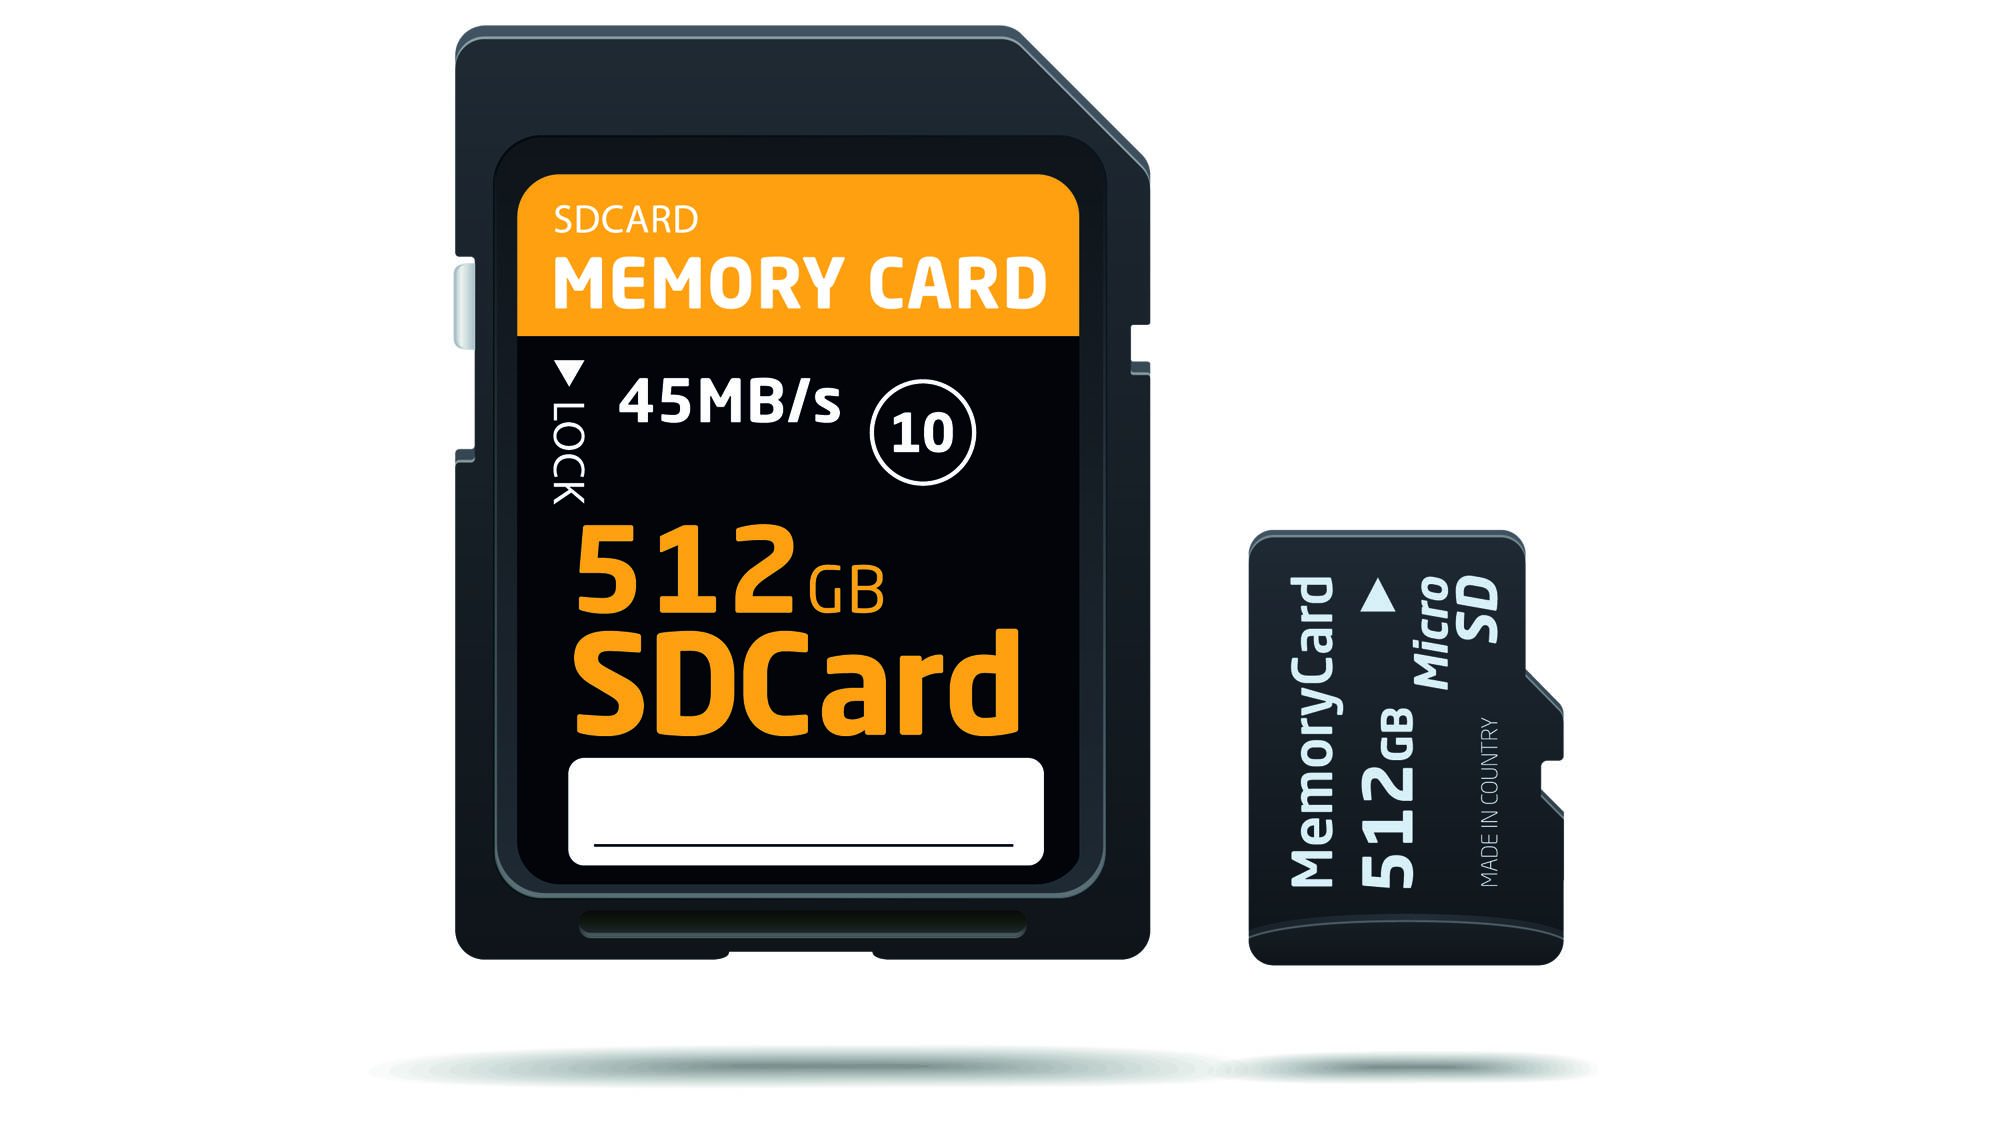 Micro SD compared to a Regular SD card